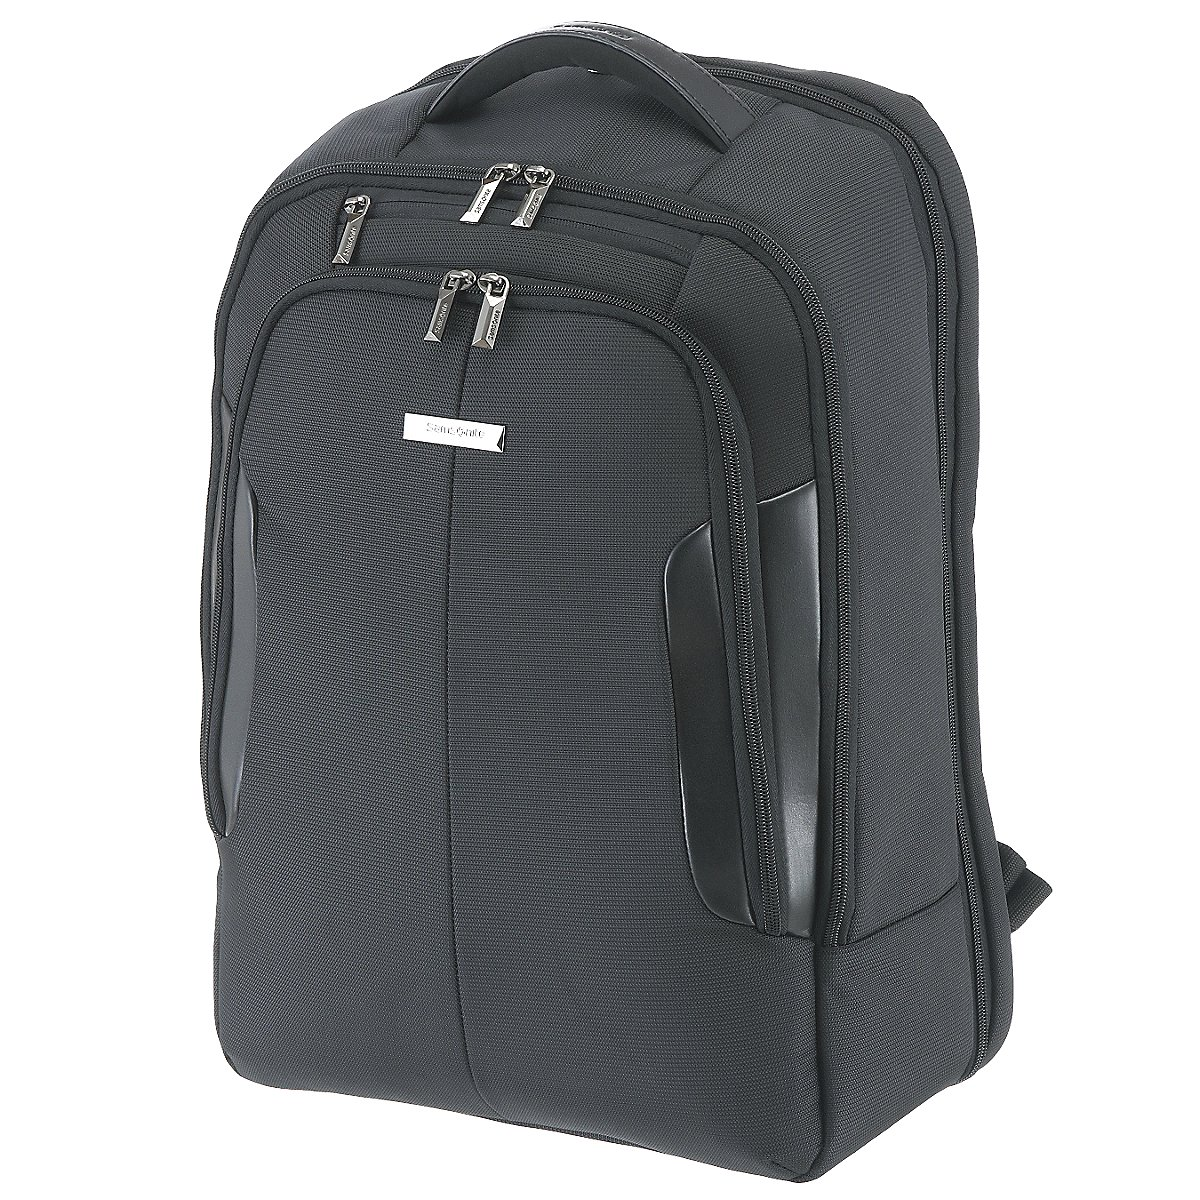 samsonite xbr rucksack mit laptopfach 51 cm koffer. Black Bedroom Furniture Sets. Home Design Ideas